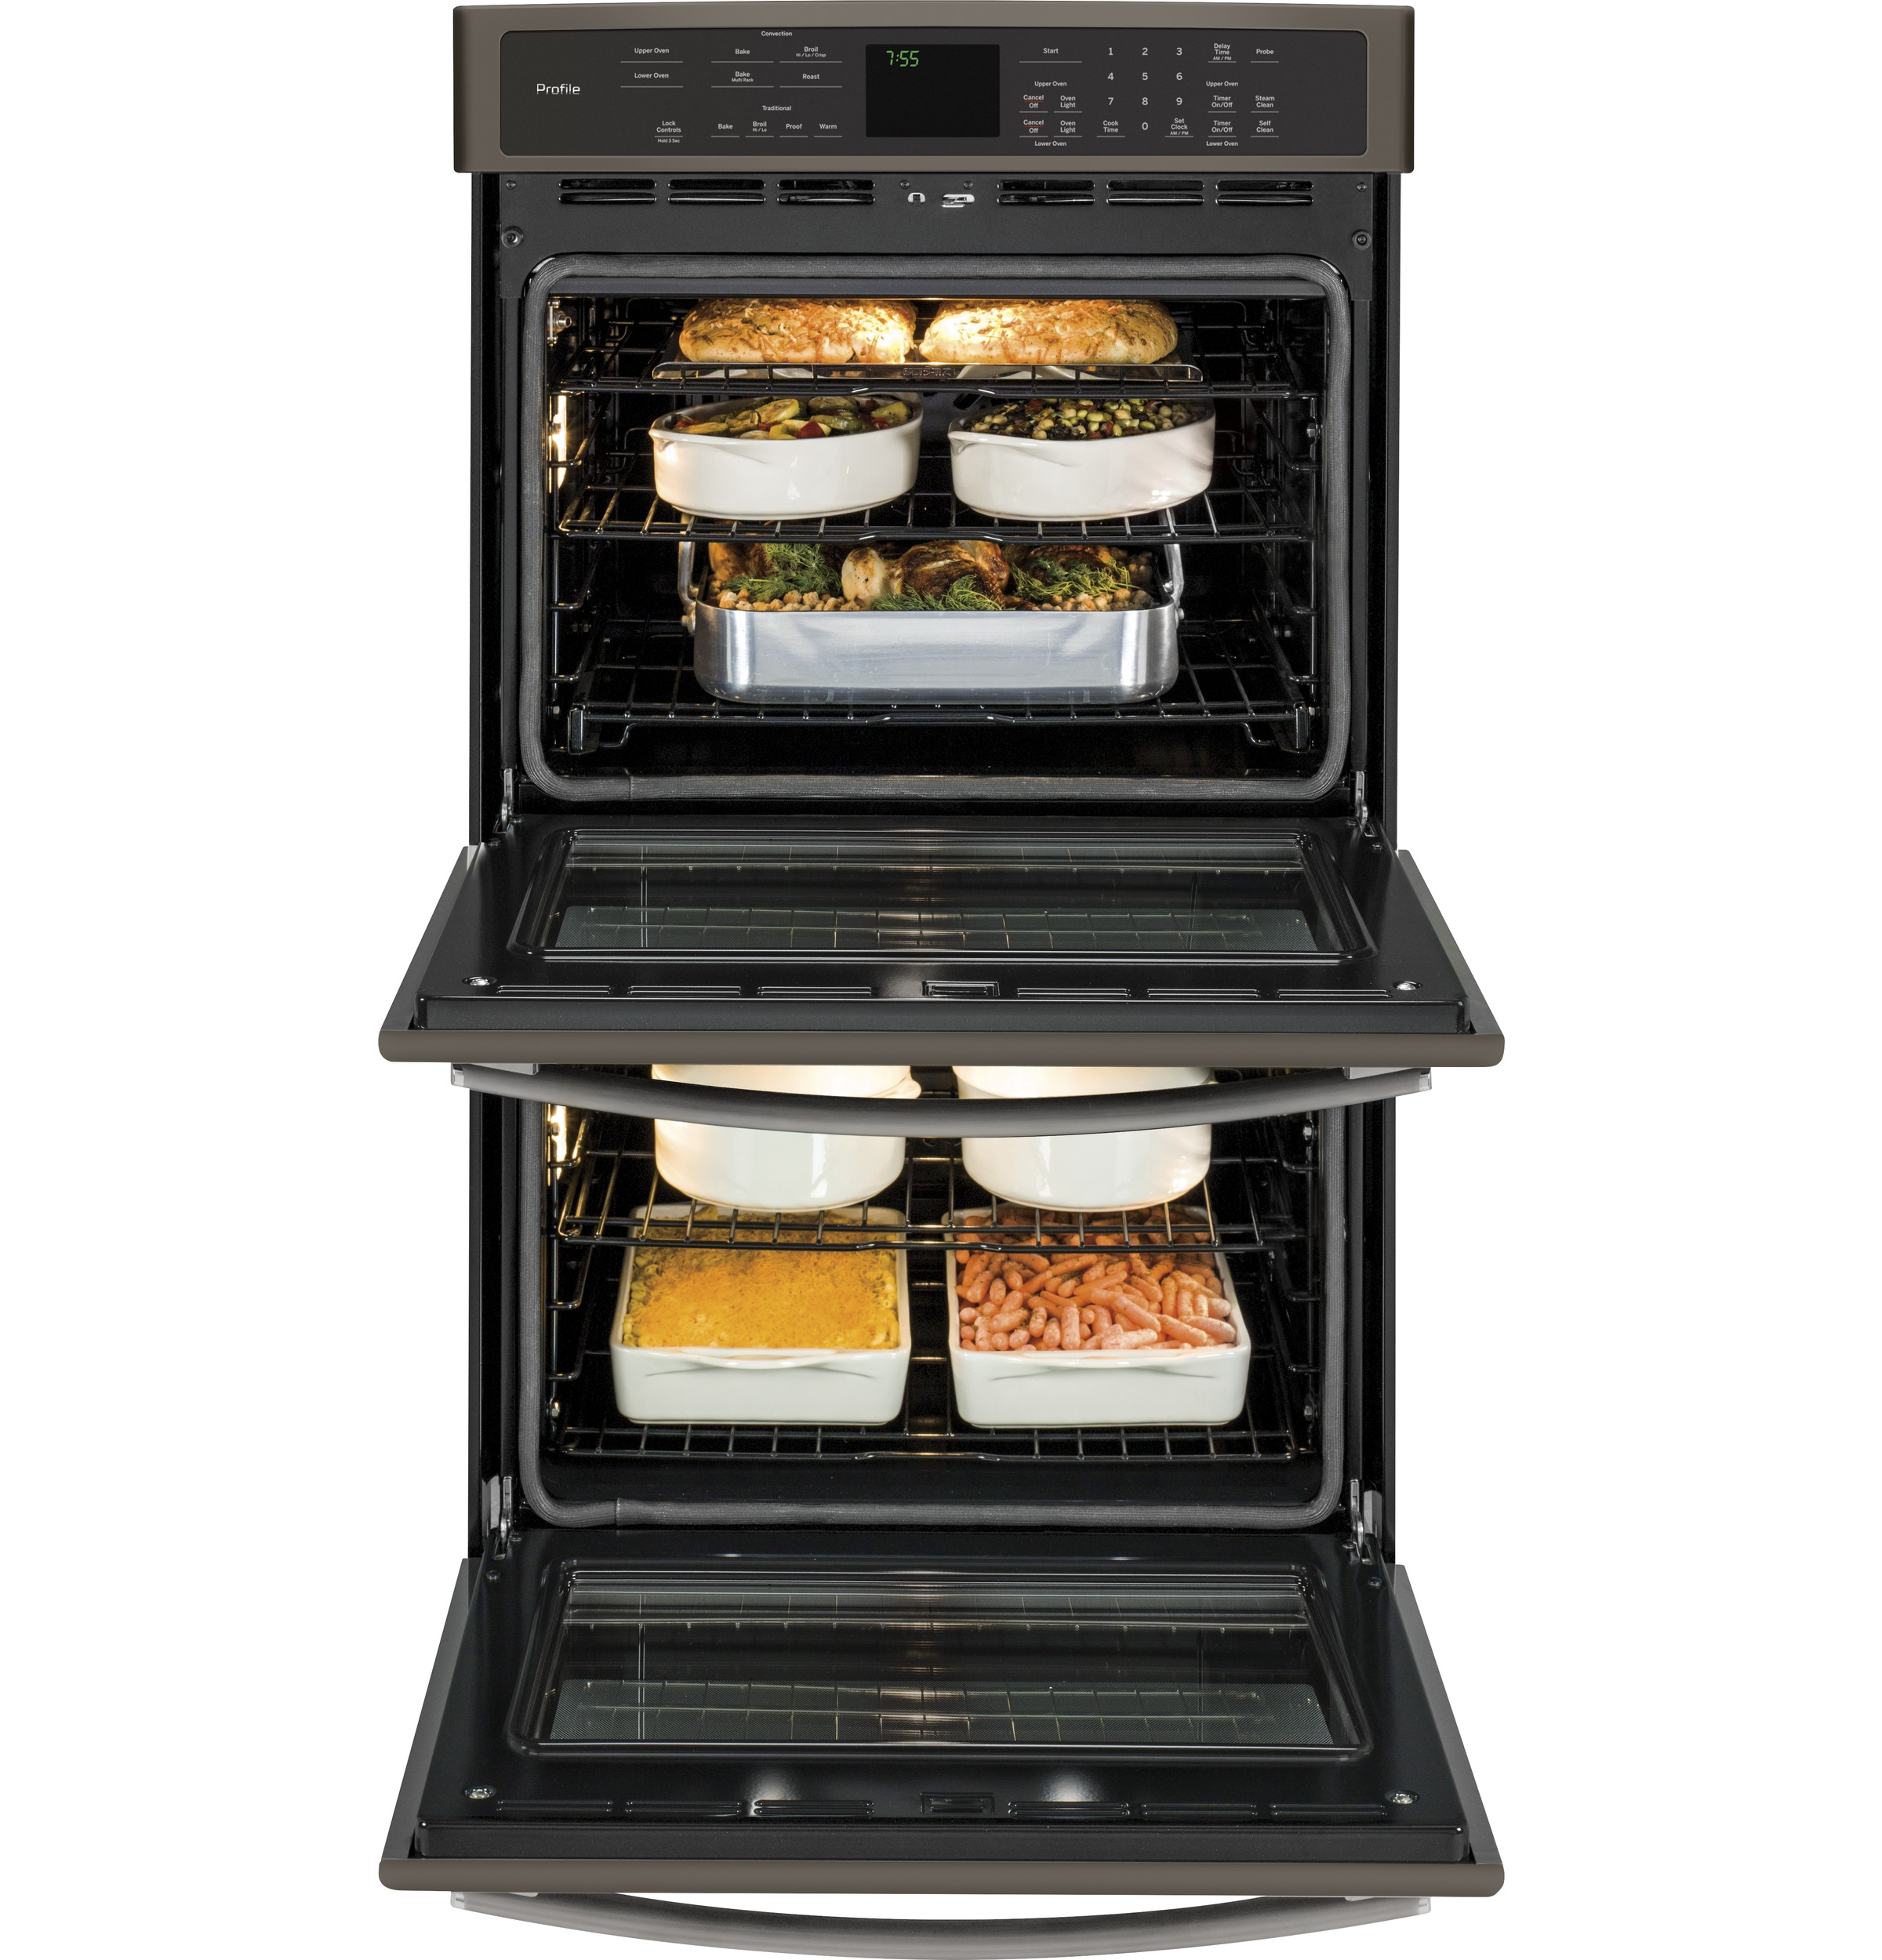 ge profile acirc cent series built in double wall oven convection product image